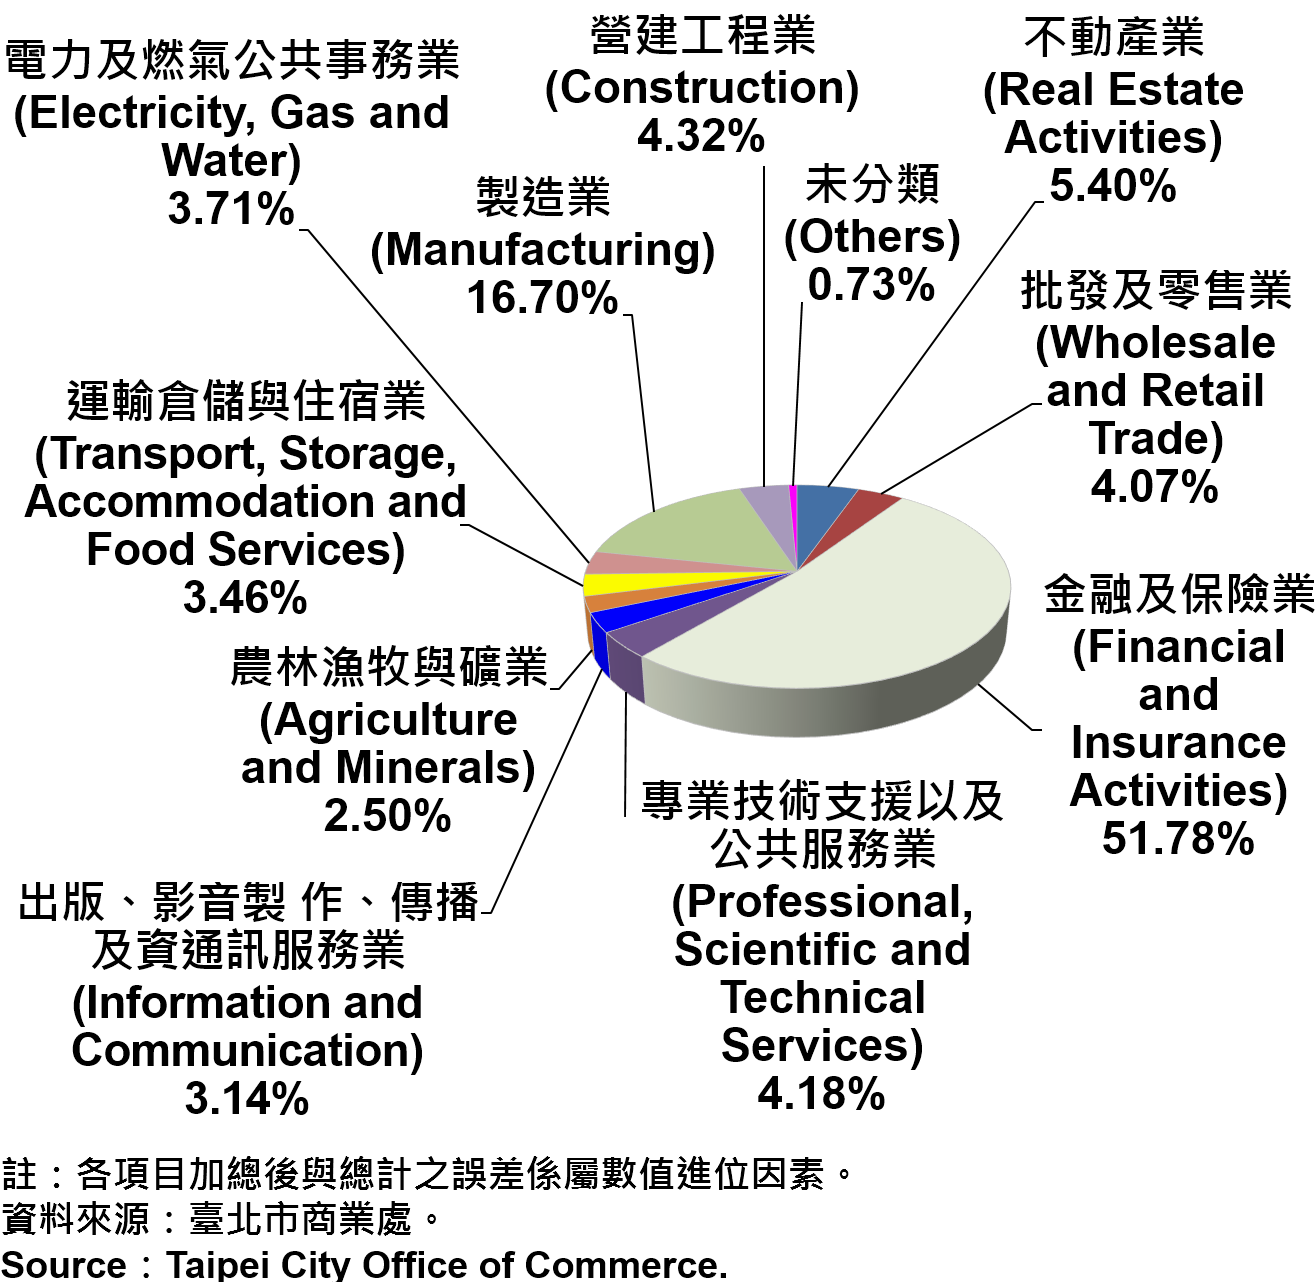 臺北市公司登記資本額產業別比重—2018Q3 Ratios of Capital for the Companies and Firms Registered in Taipei City by Industry—2018Q3